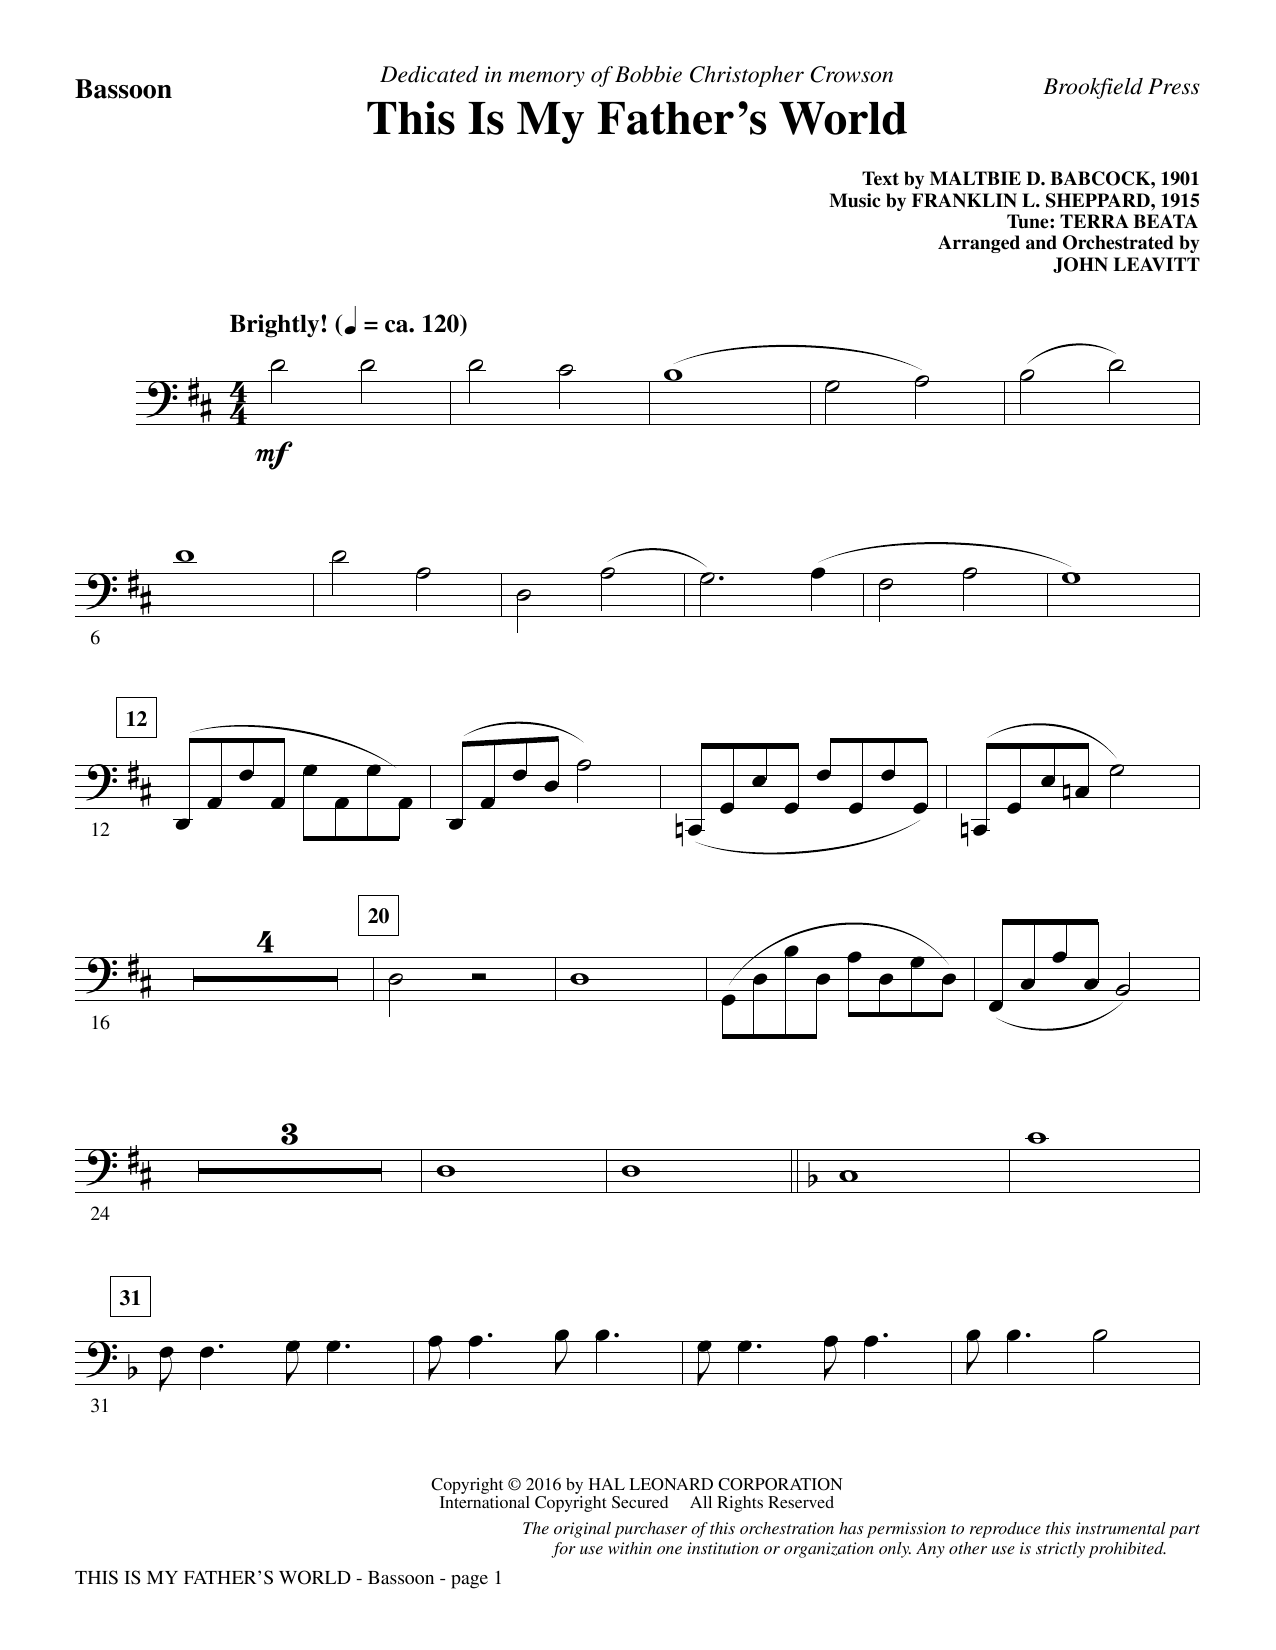 This Is My Father's World - Bassoon Sheet Music